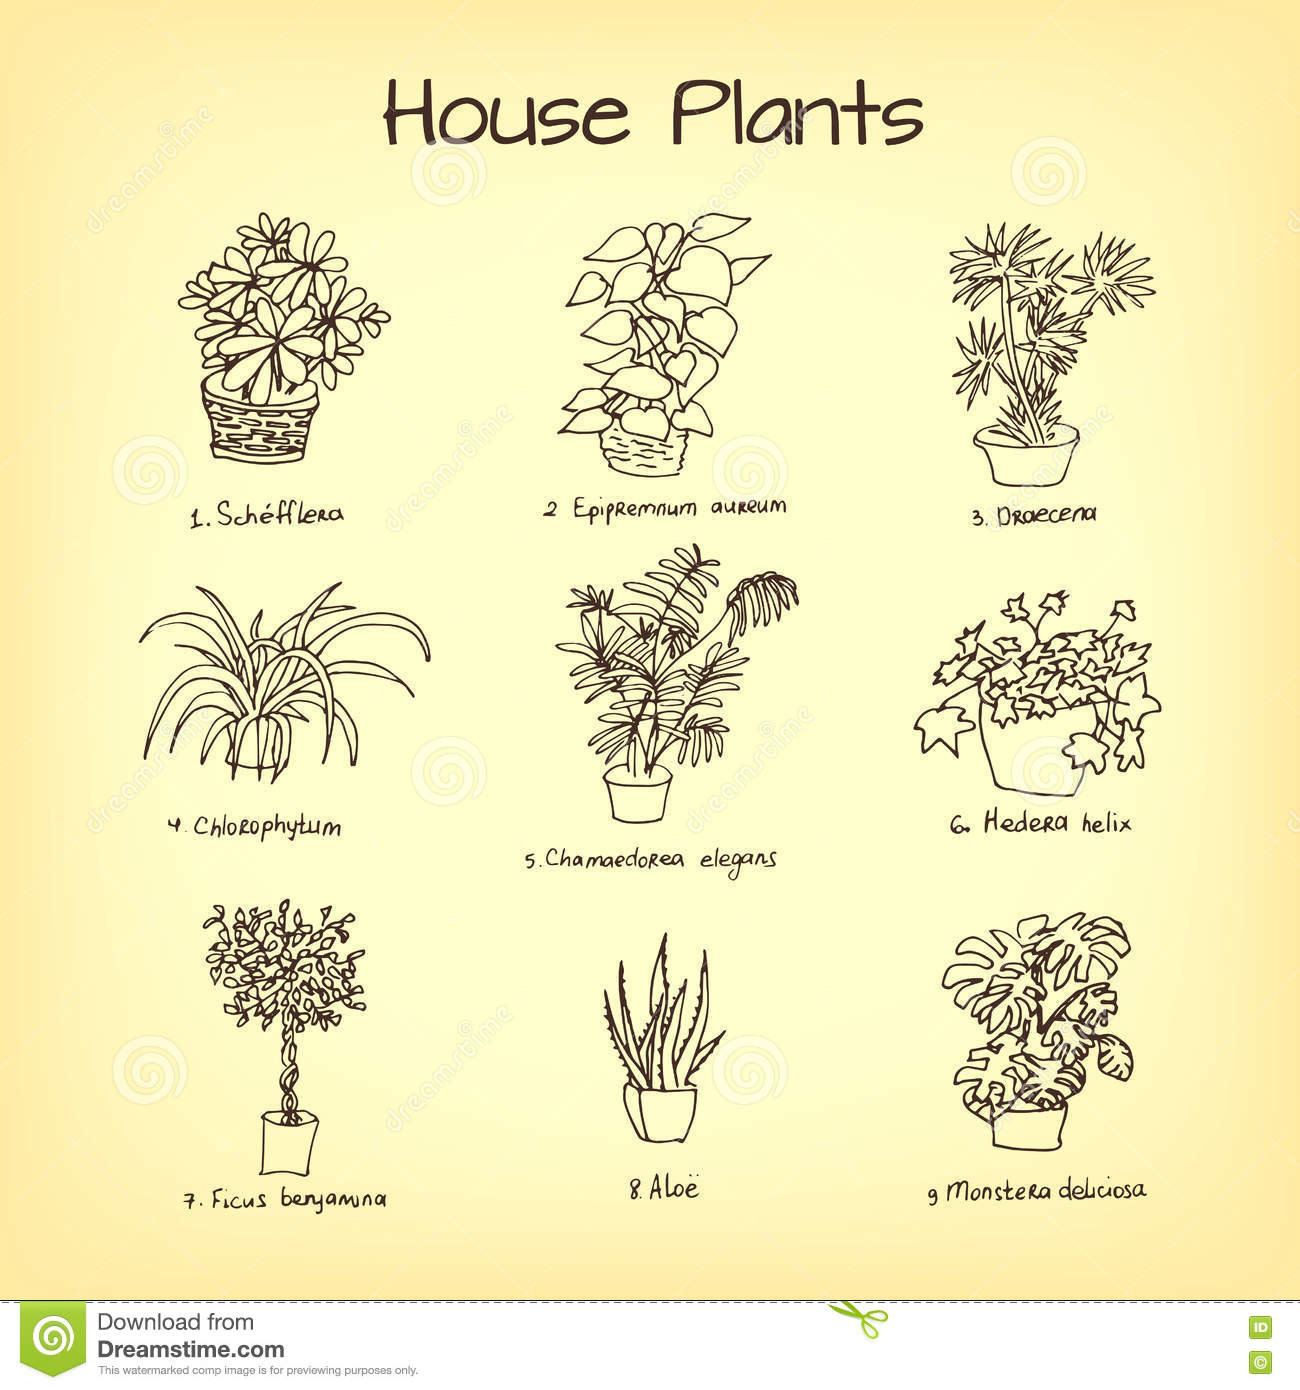 house plants drawing. royaltyfree vector download house plants drawing